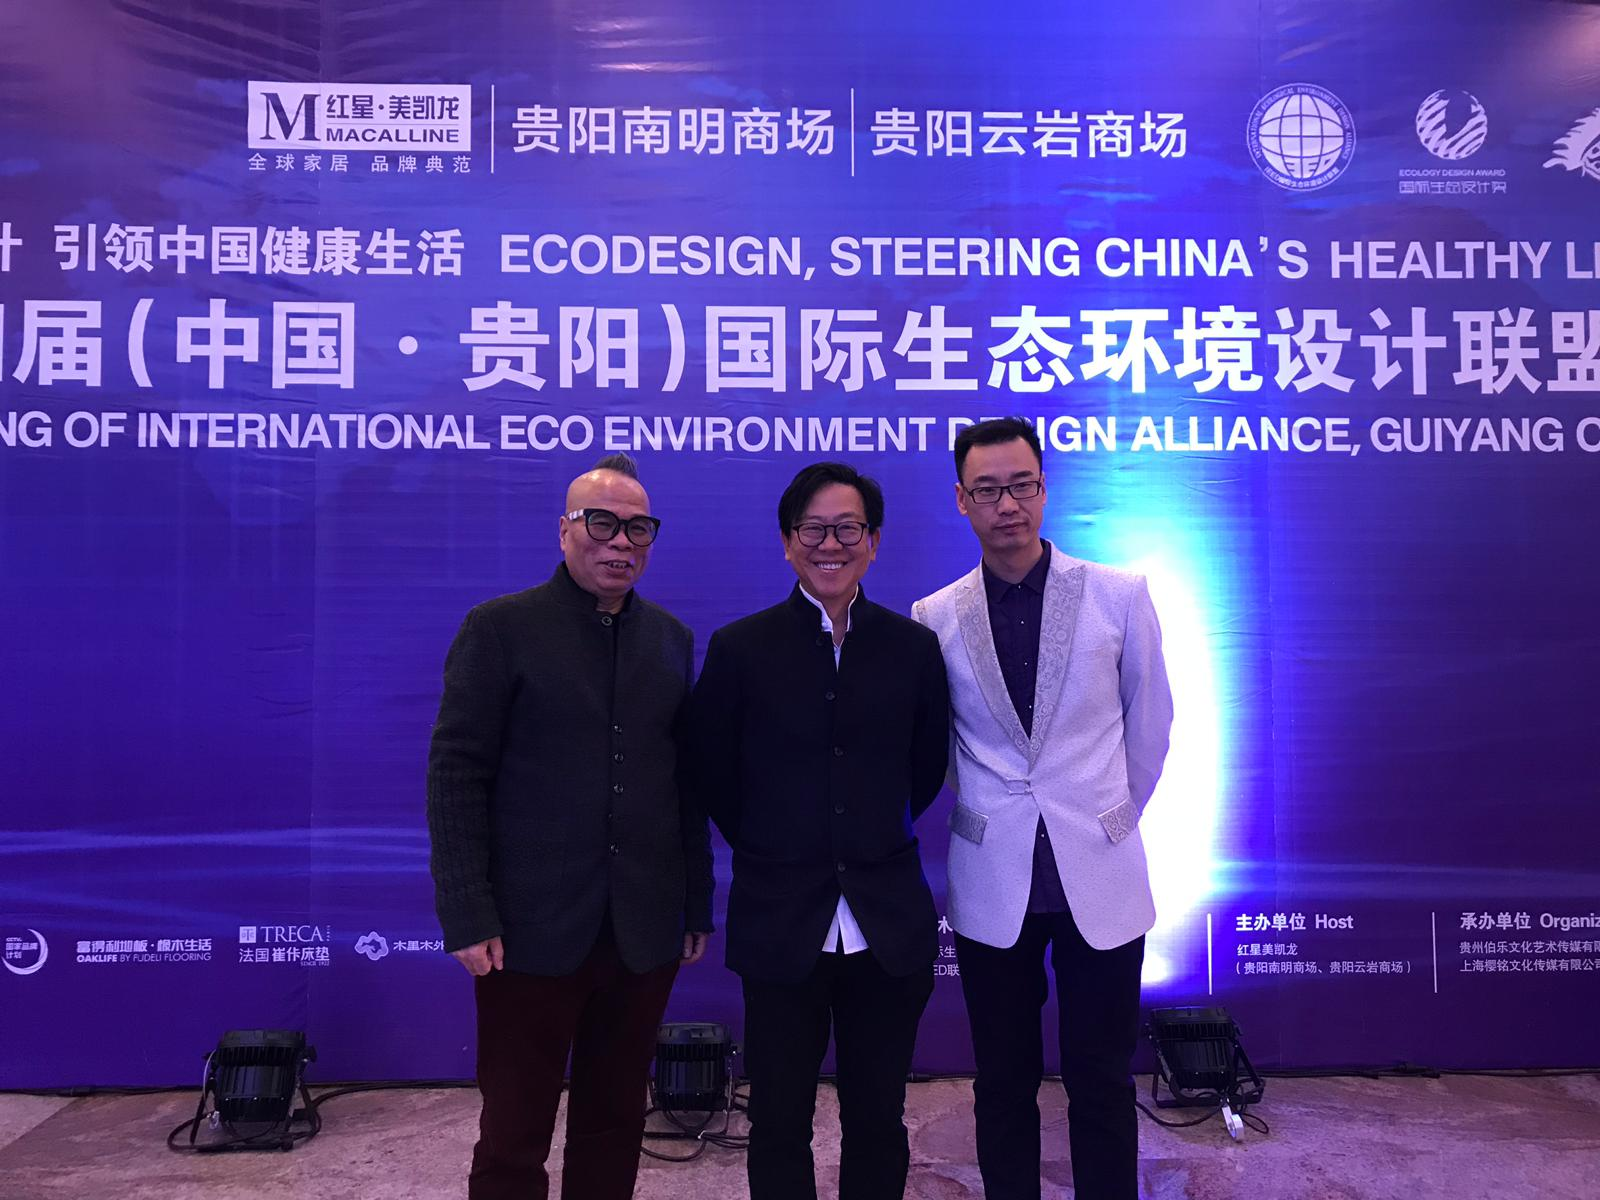 Annual Meeting of International ECO Environment Design Alliance, Guiyang China 2018